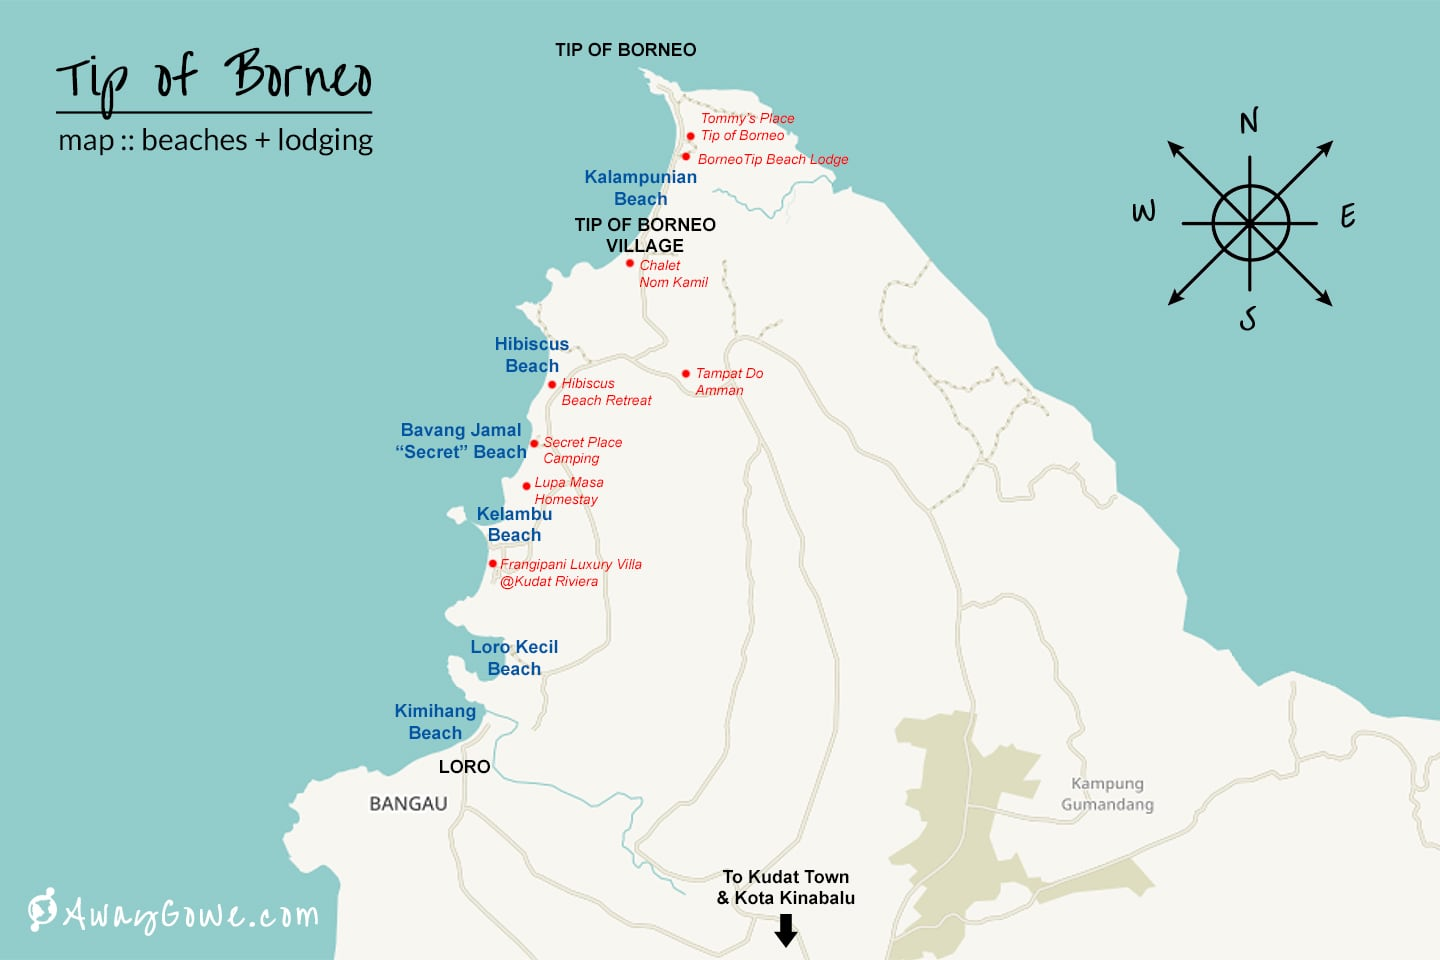 tip of borneo beach lodging map